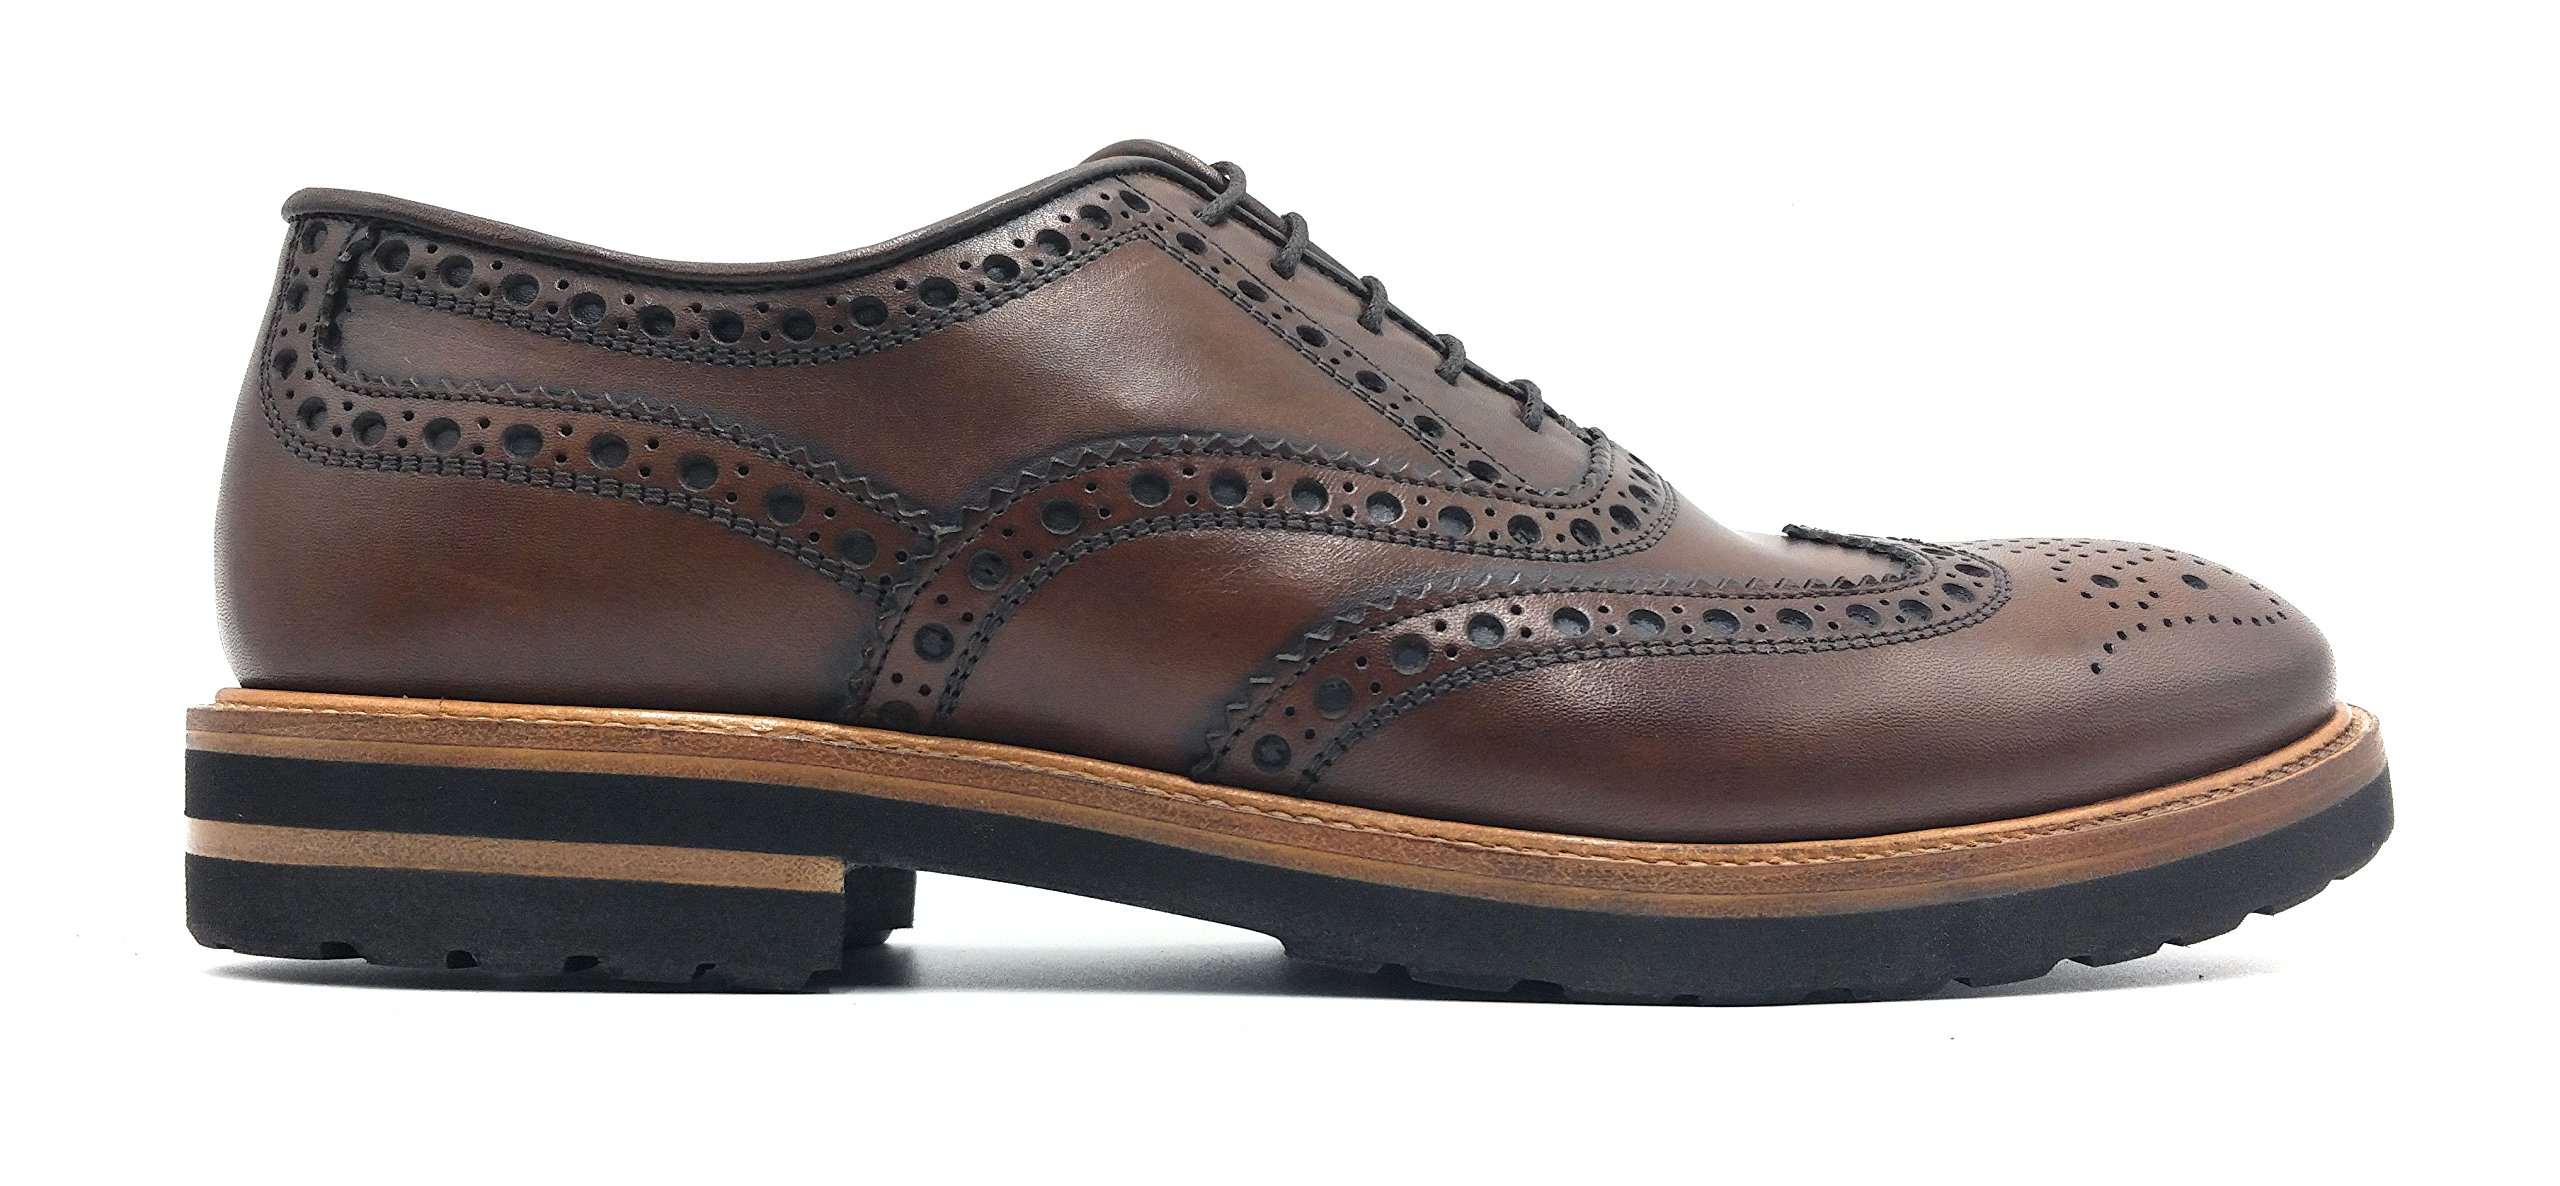 Antonio Maurizi Lugged Sole Calfskin Brogue Wingtip in Walnut (7 US/40 EU)